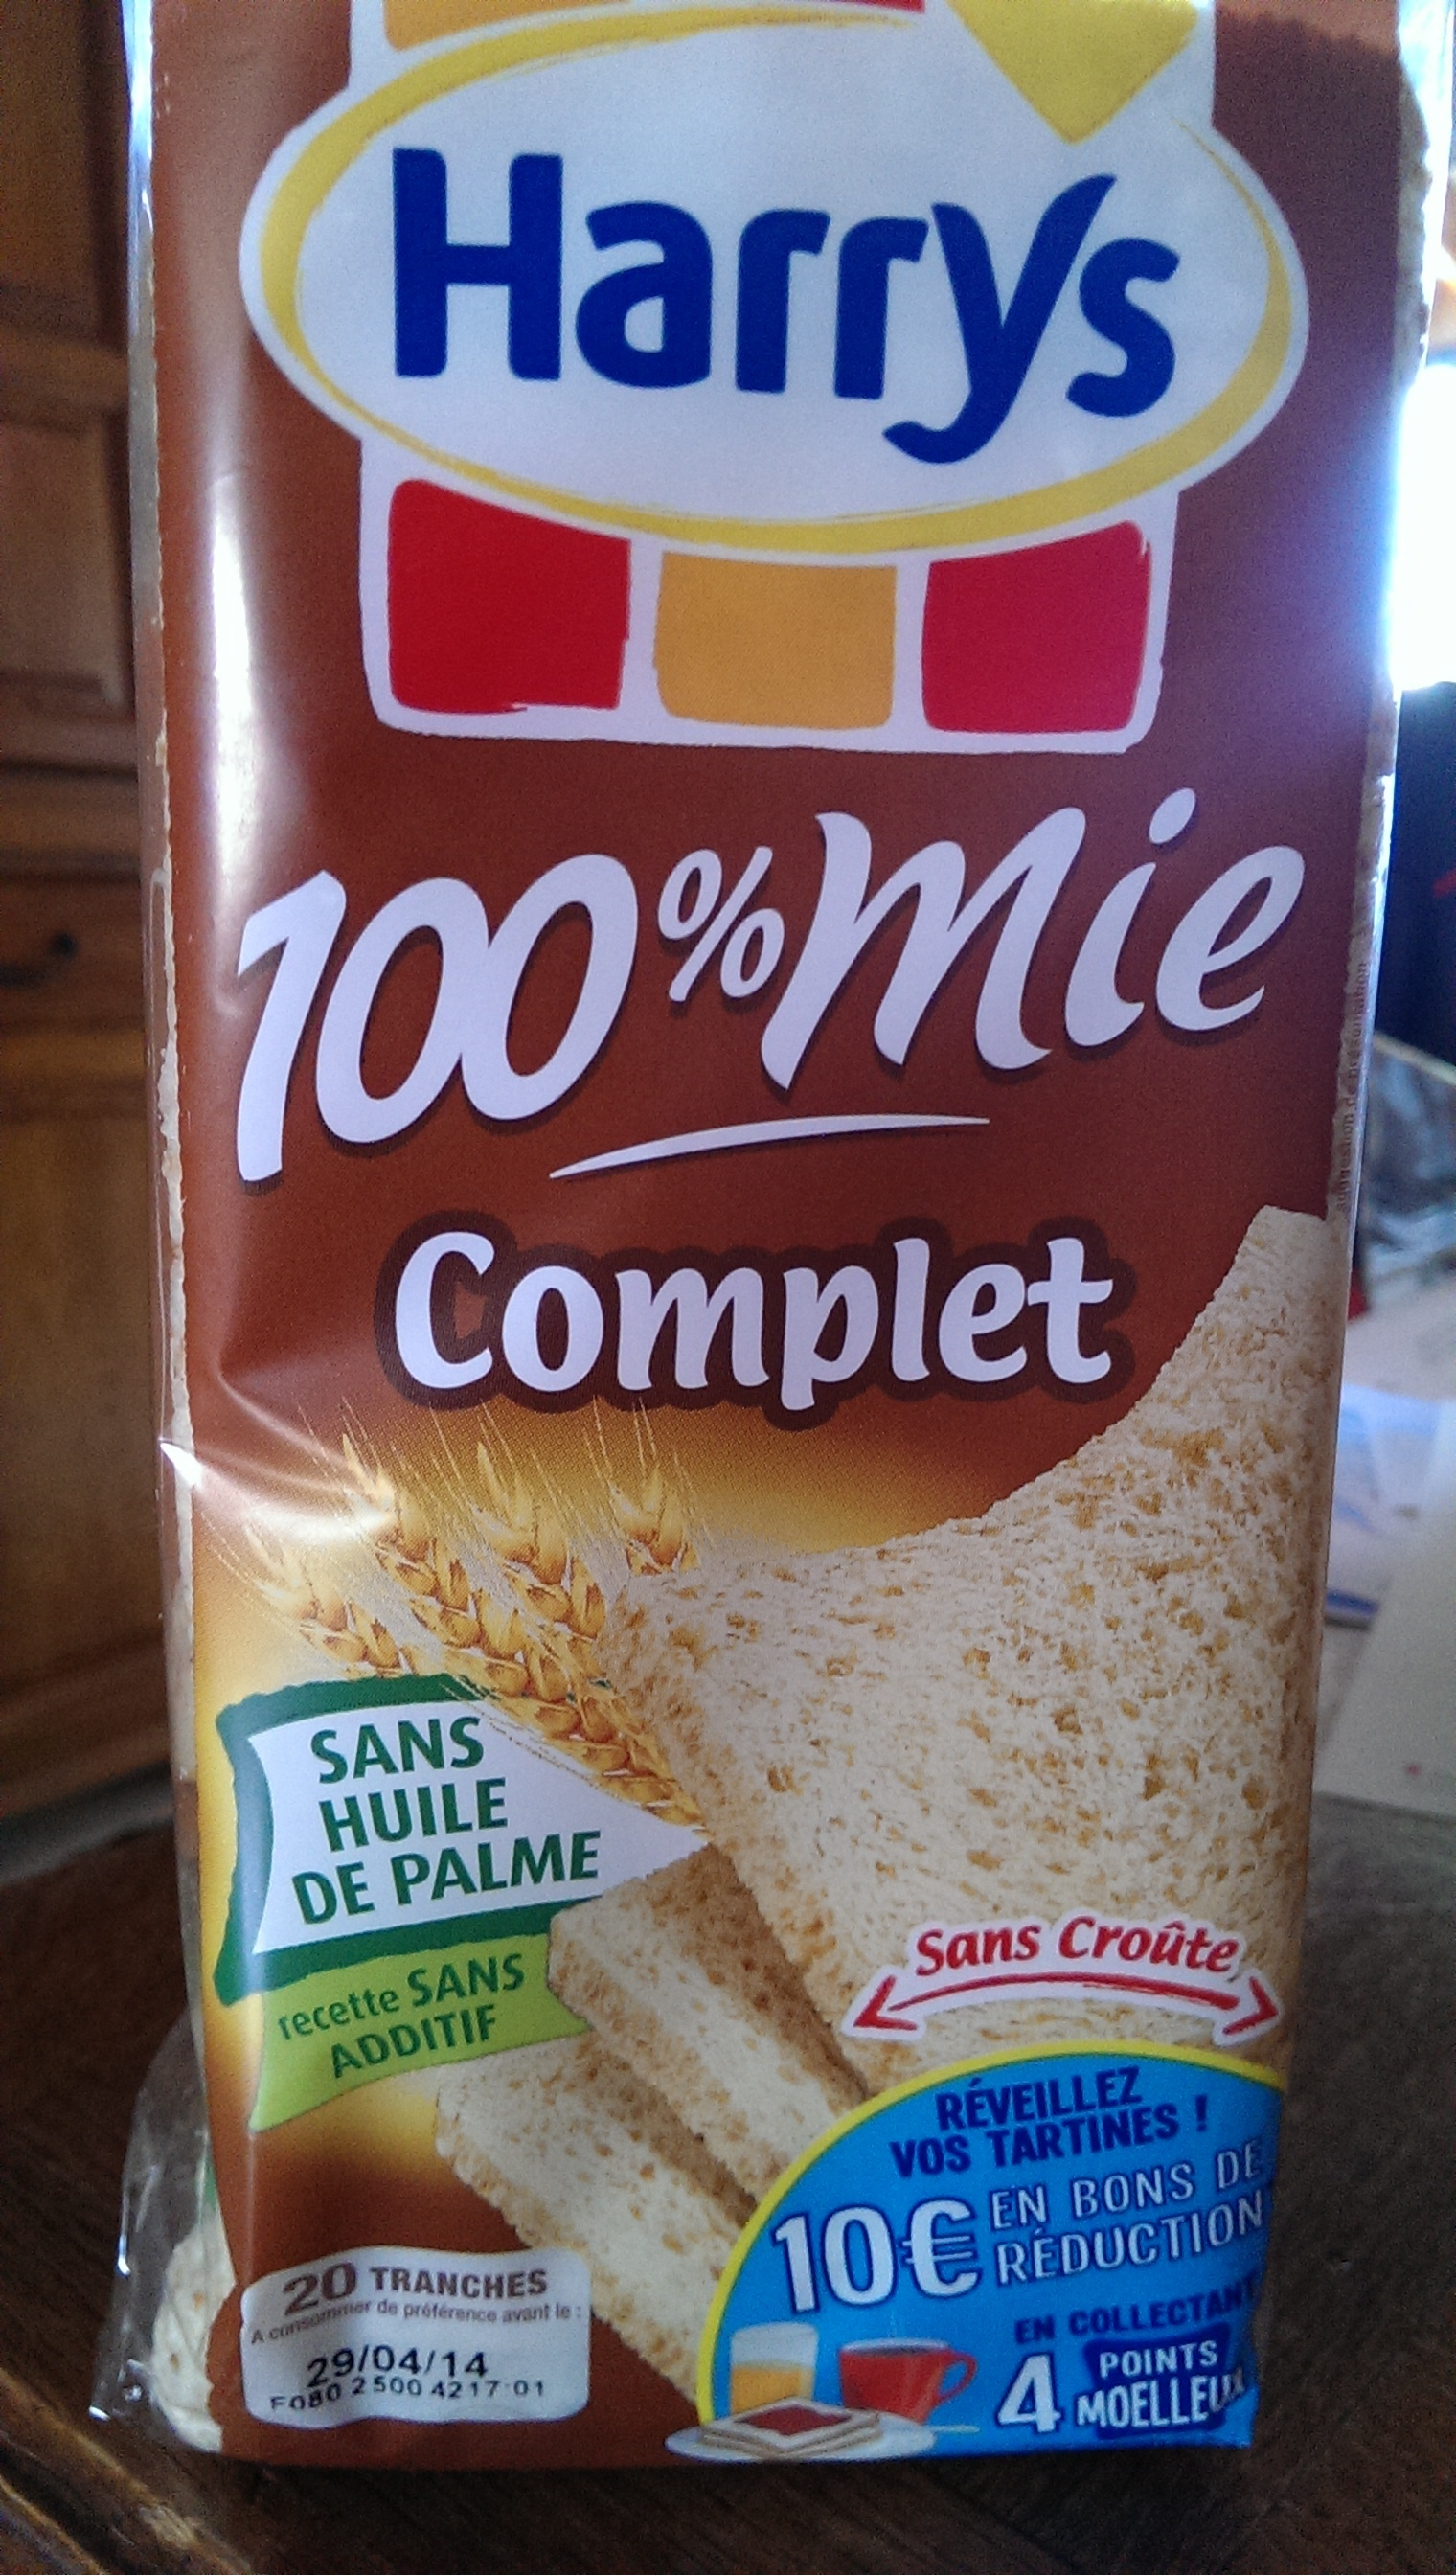 100% mie complet - Prodotto - fr